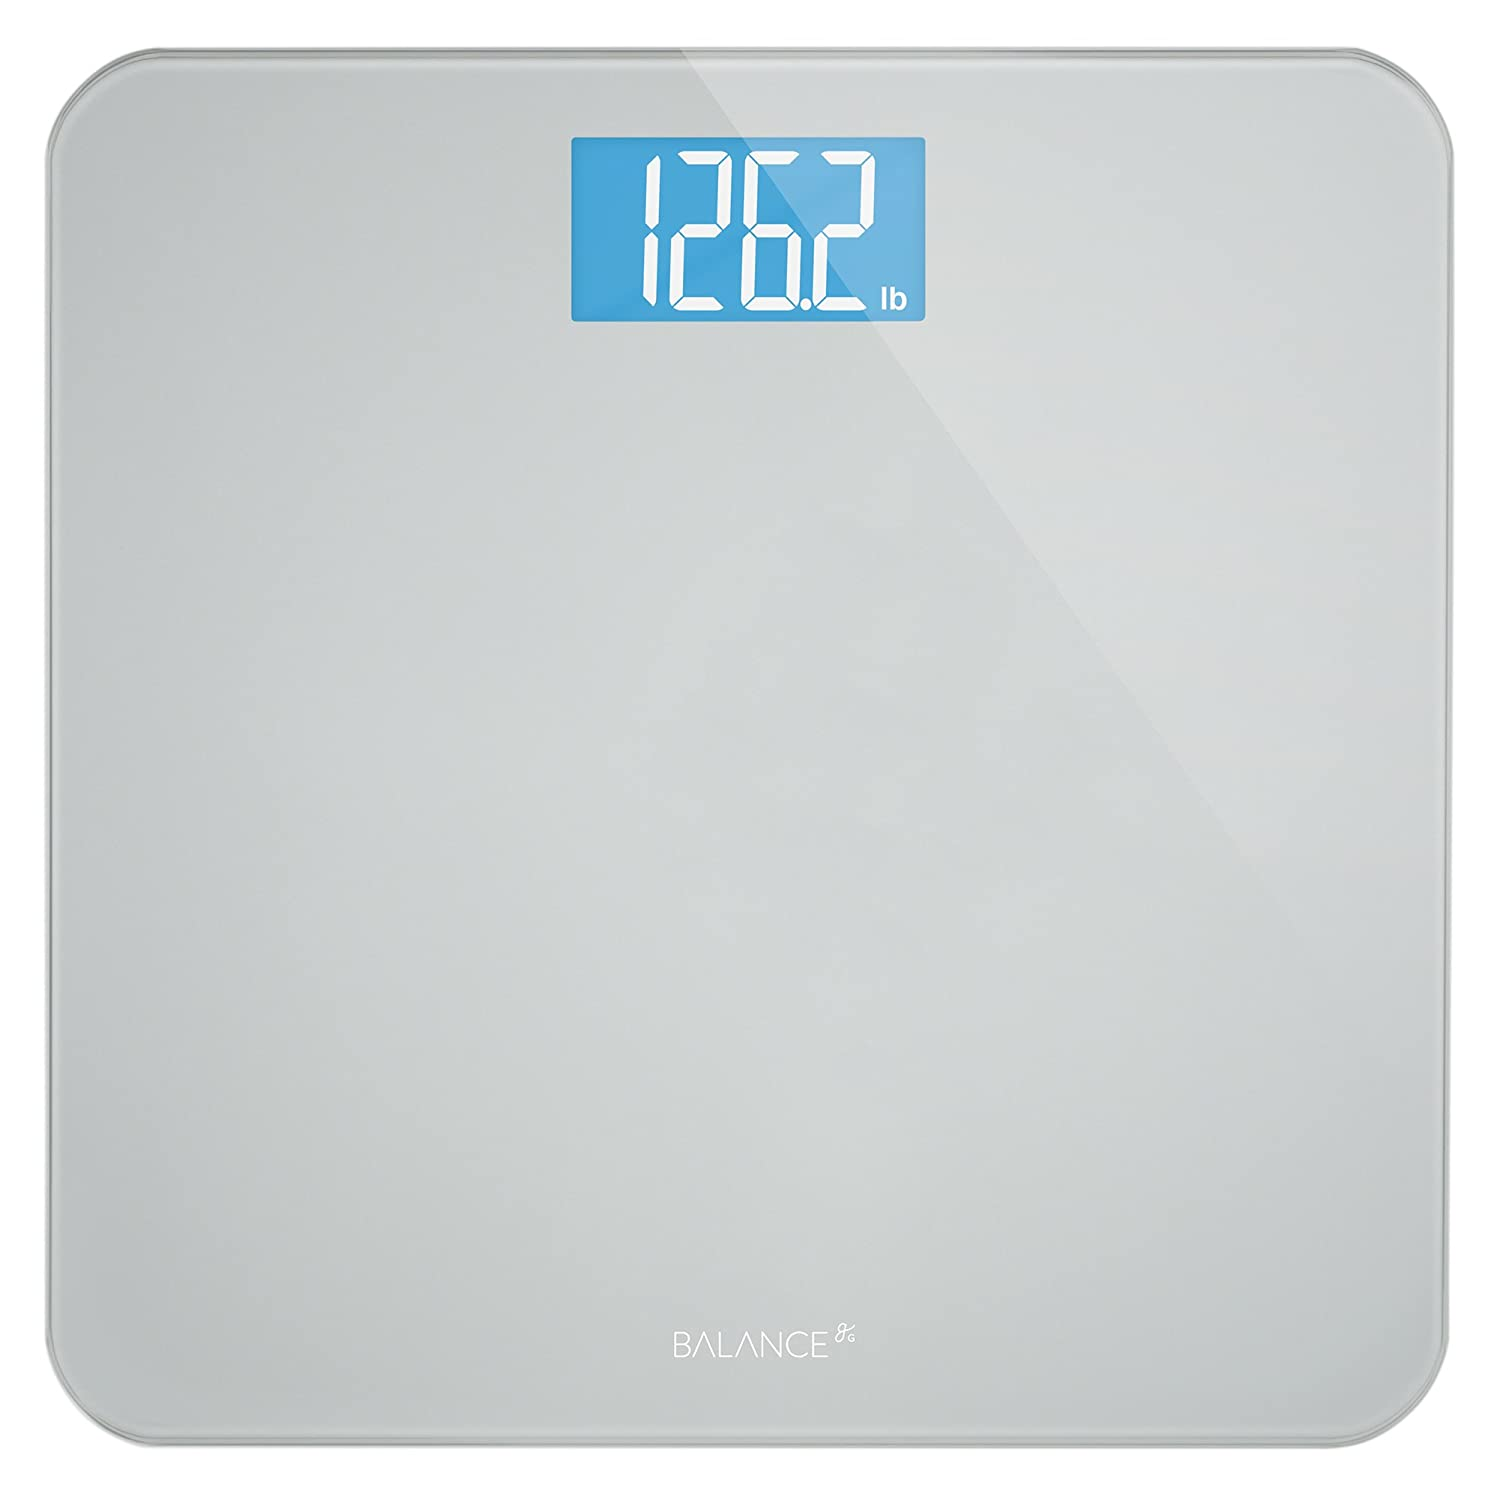 Amazon scale bathroom - Amazon Com Greater Goods Backlit Digital Body Weight Bathroom Scale With Backlit Glass Display And Accurate Weight Measurements Health Personal Care